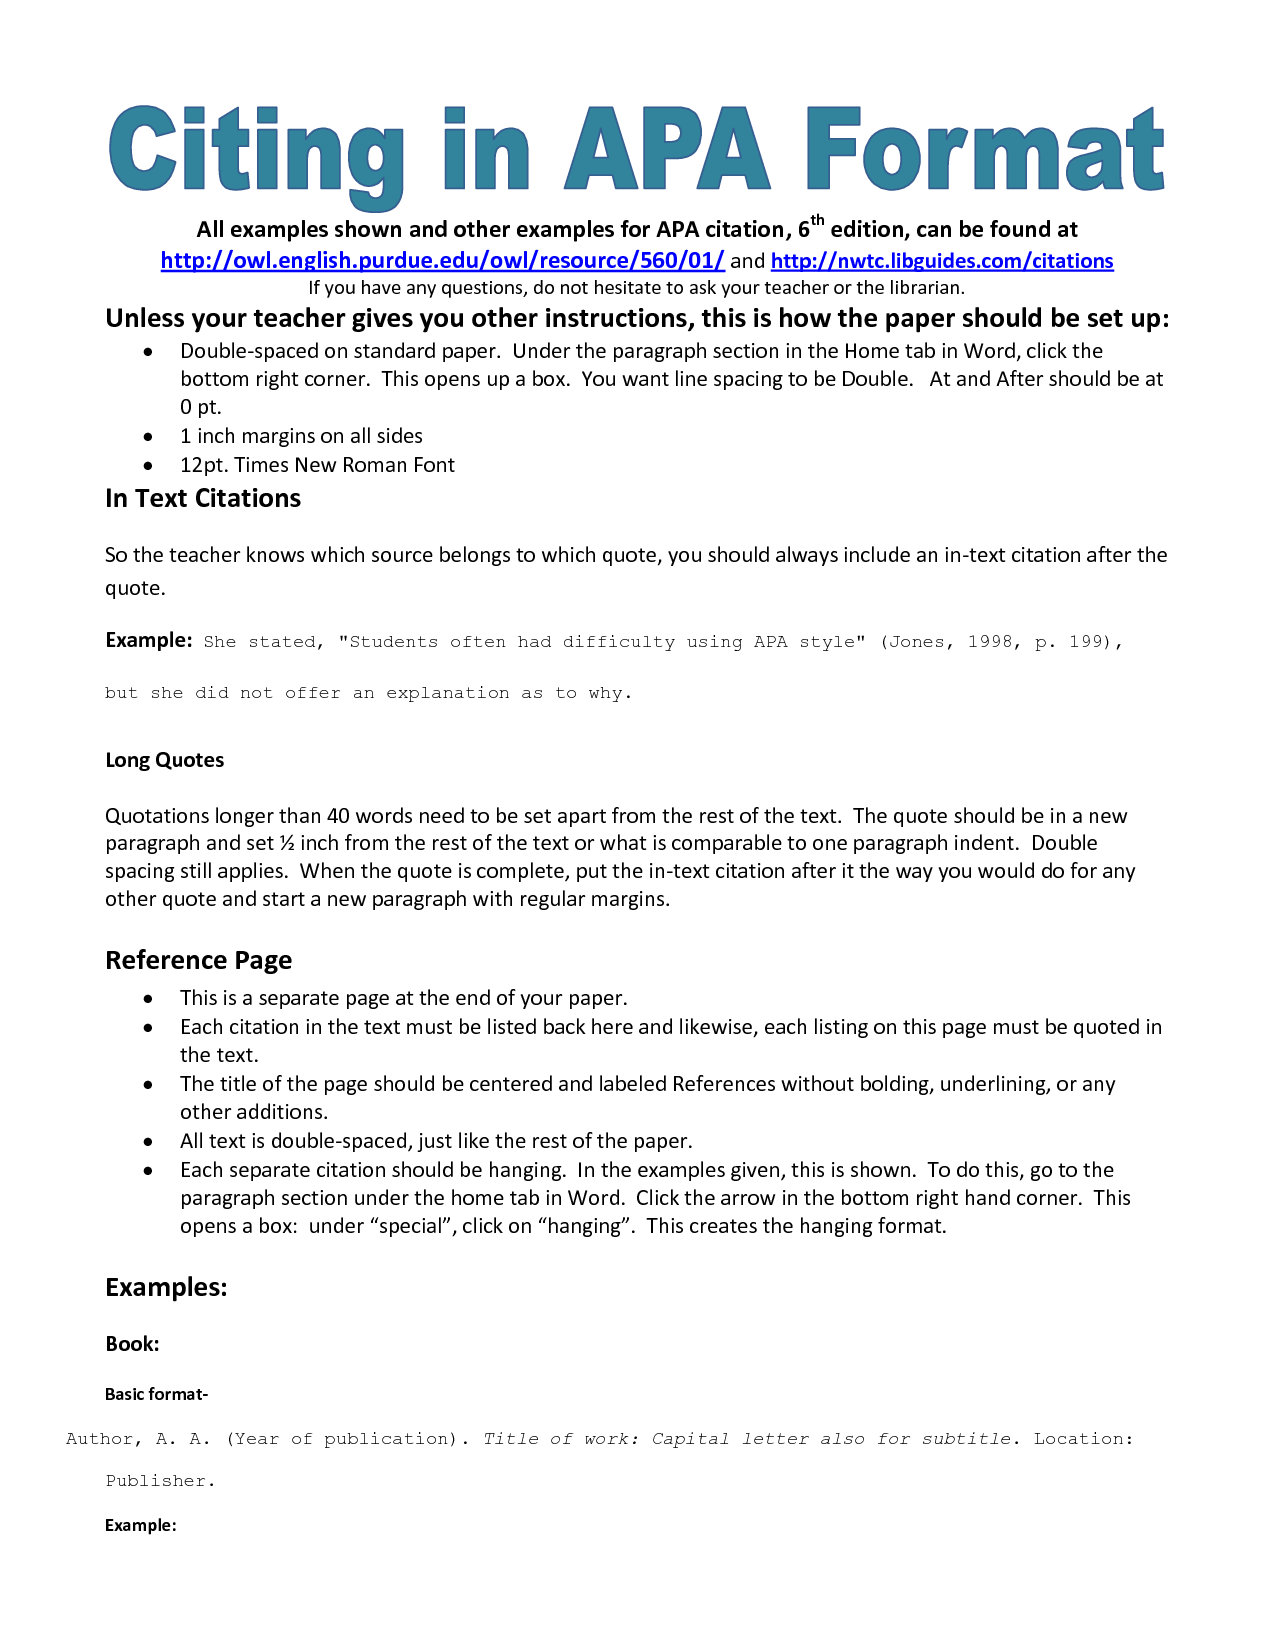 012 Apa Format Research Paper Stunning Examples Example 2012 2017 Citation Full